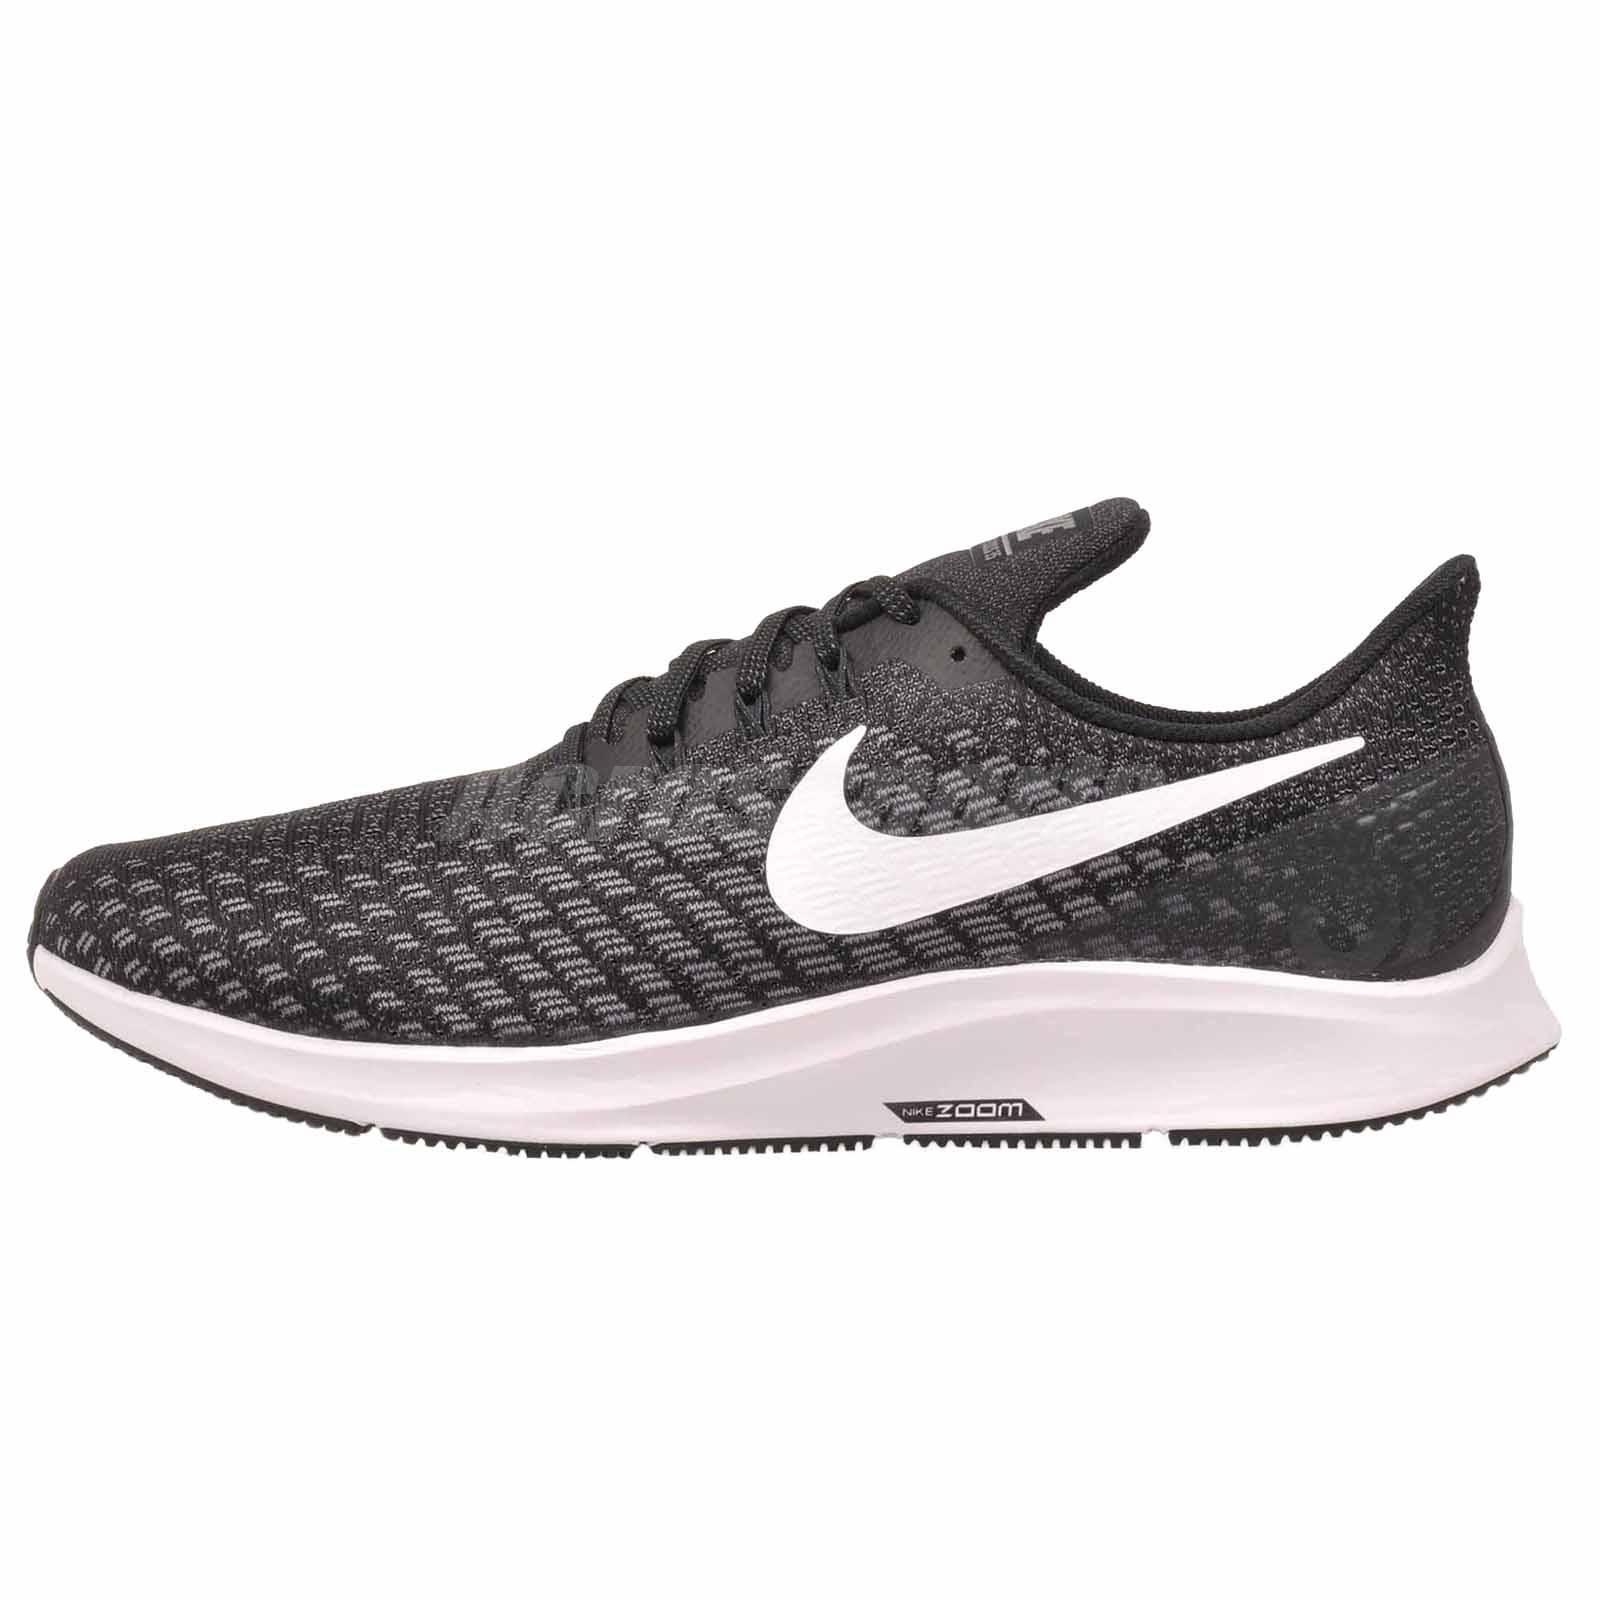 Details about Nike Air Zoom Pegasus 35 4E Running Mens Wide Running Shoes Black 942854 001